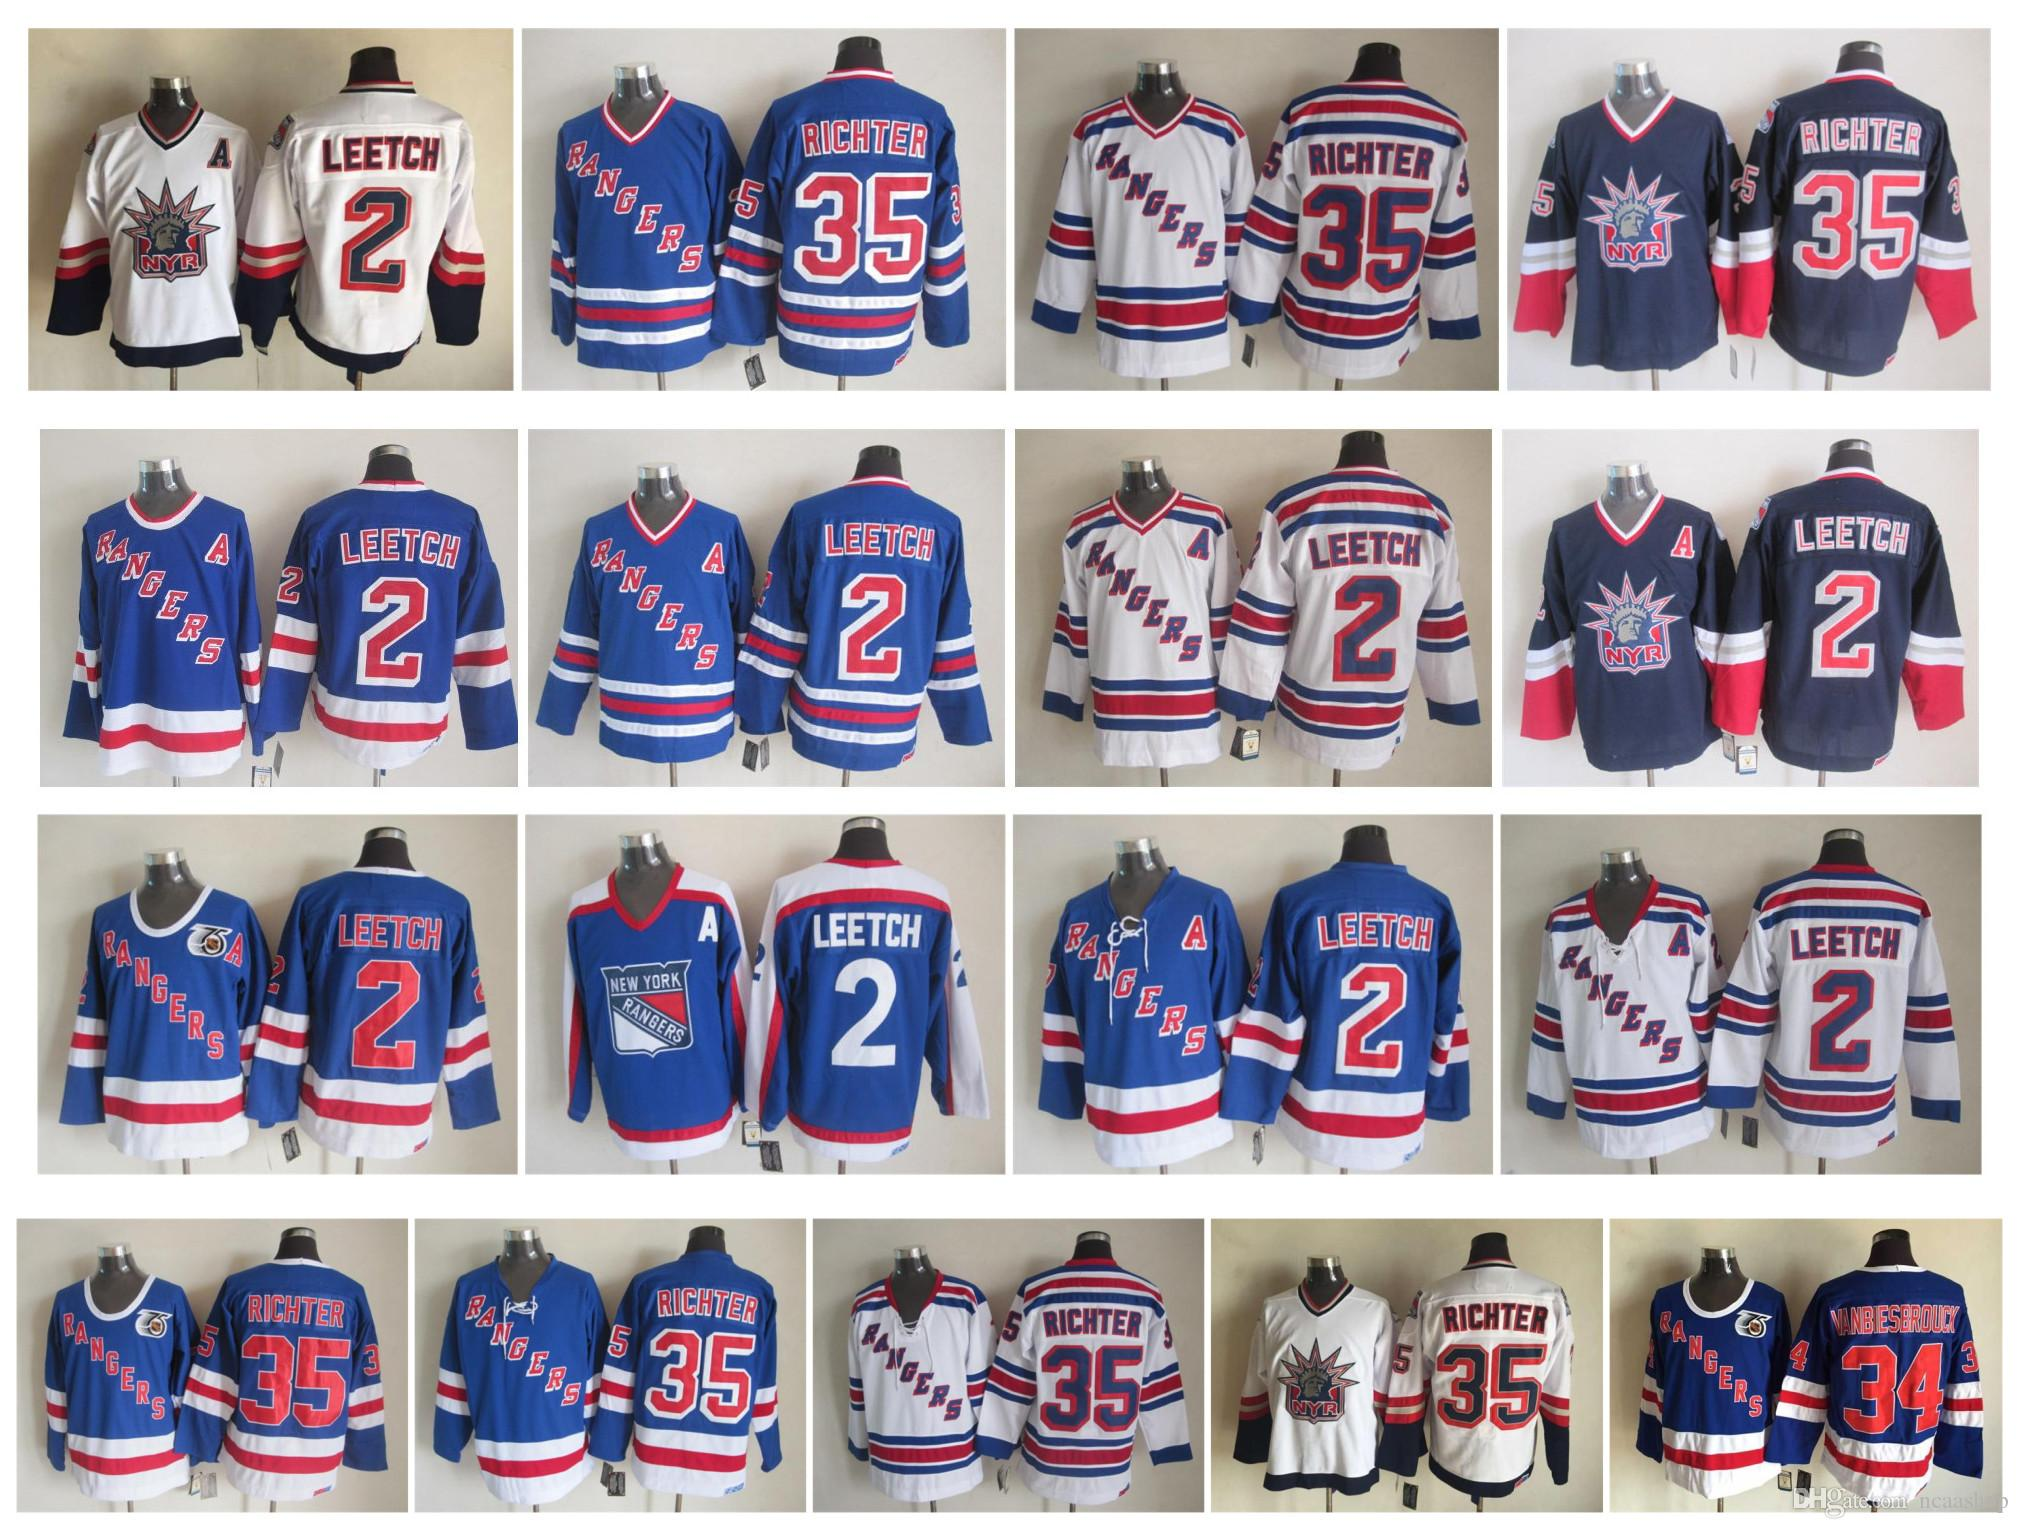 sports shoes 511db 13850 Vintage New York Rangers Jersey 2 Brian Leetch 35 Mike Richter 36 Glenn  Anderson 75th Anniversary Blue White CCM Hockey Jersey